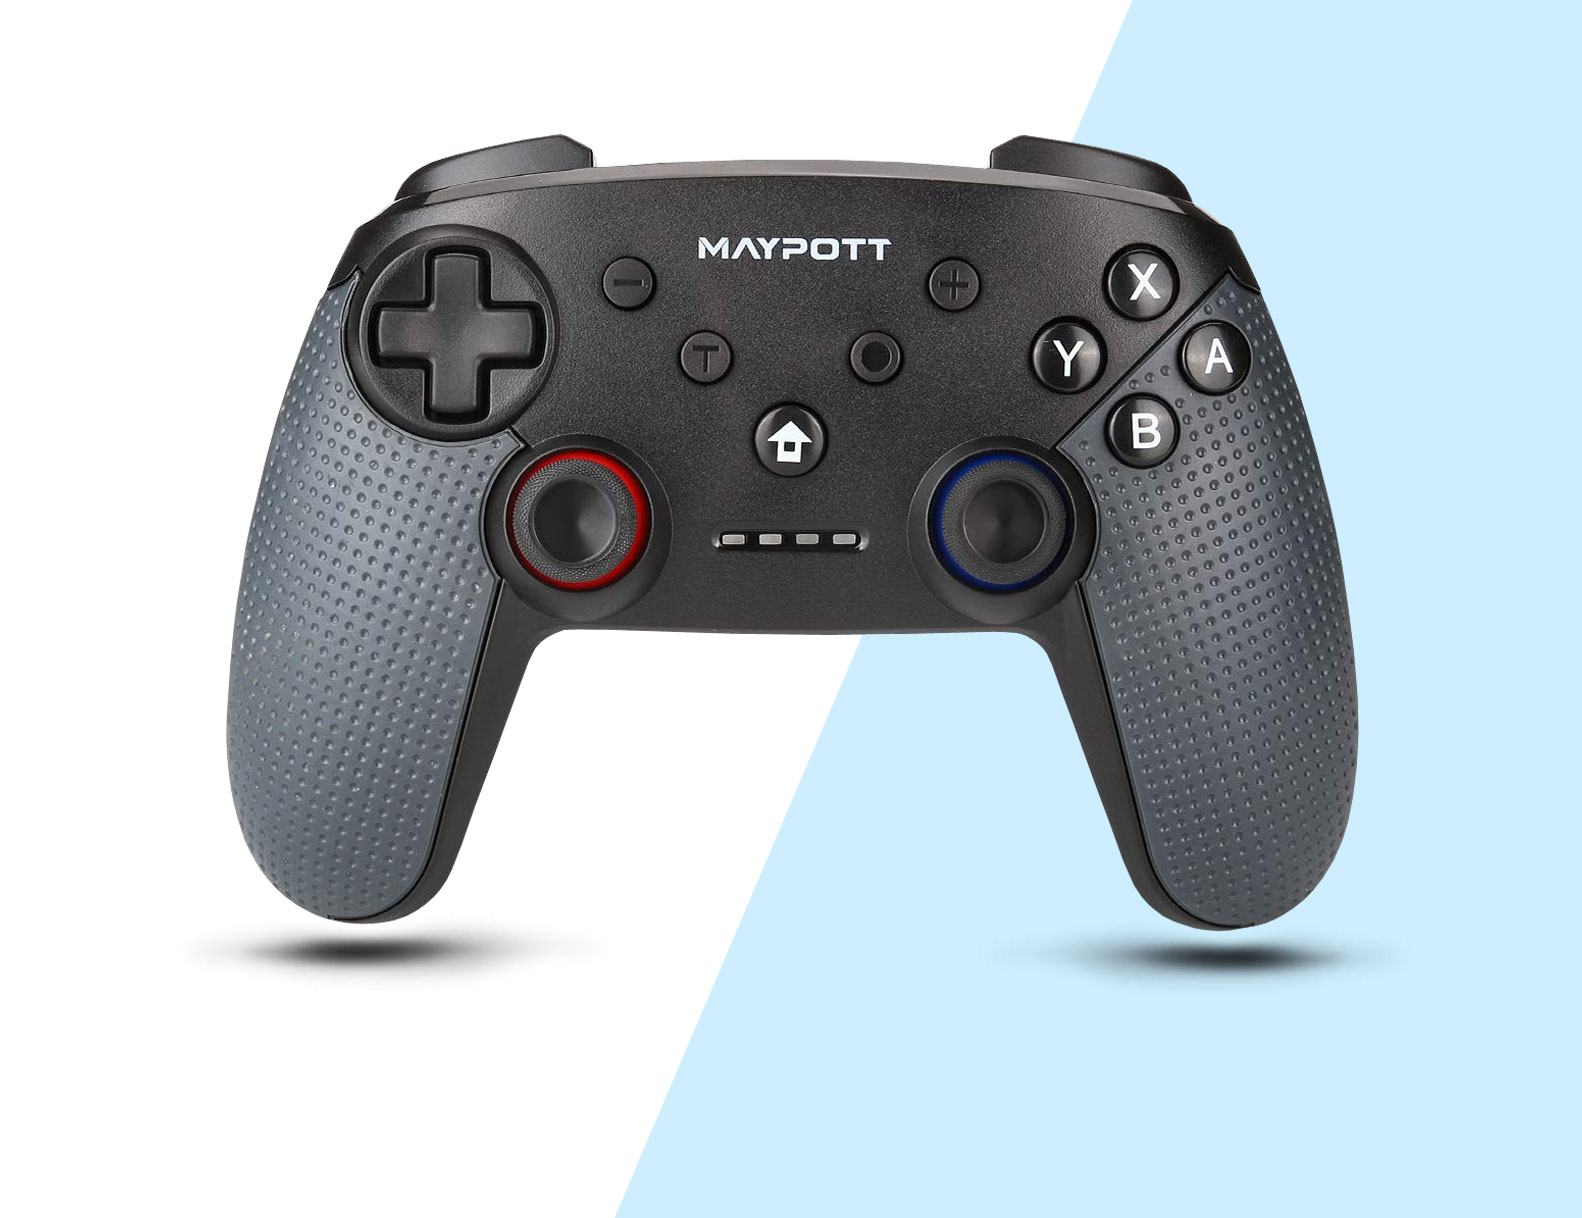 Maypott Wireless Controller for Nintendo Switch